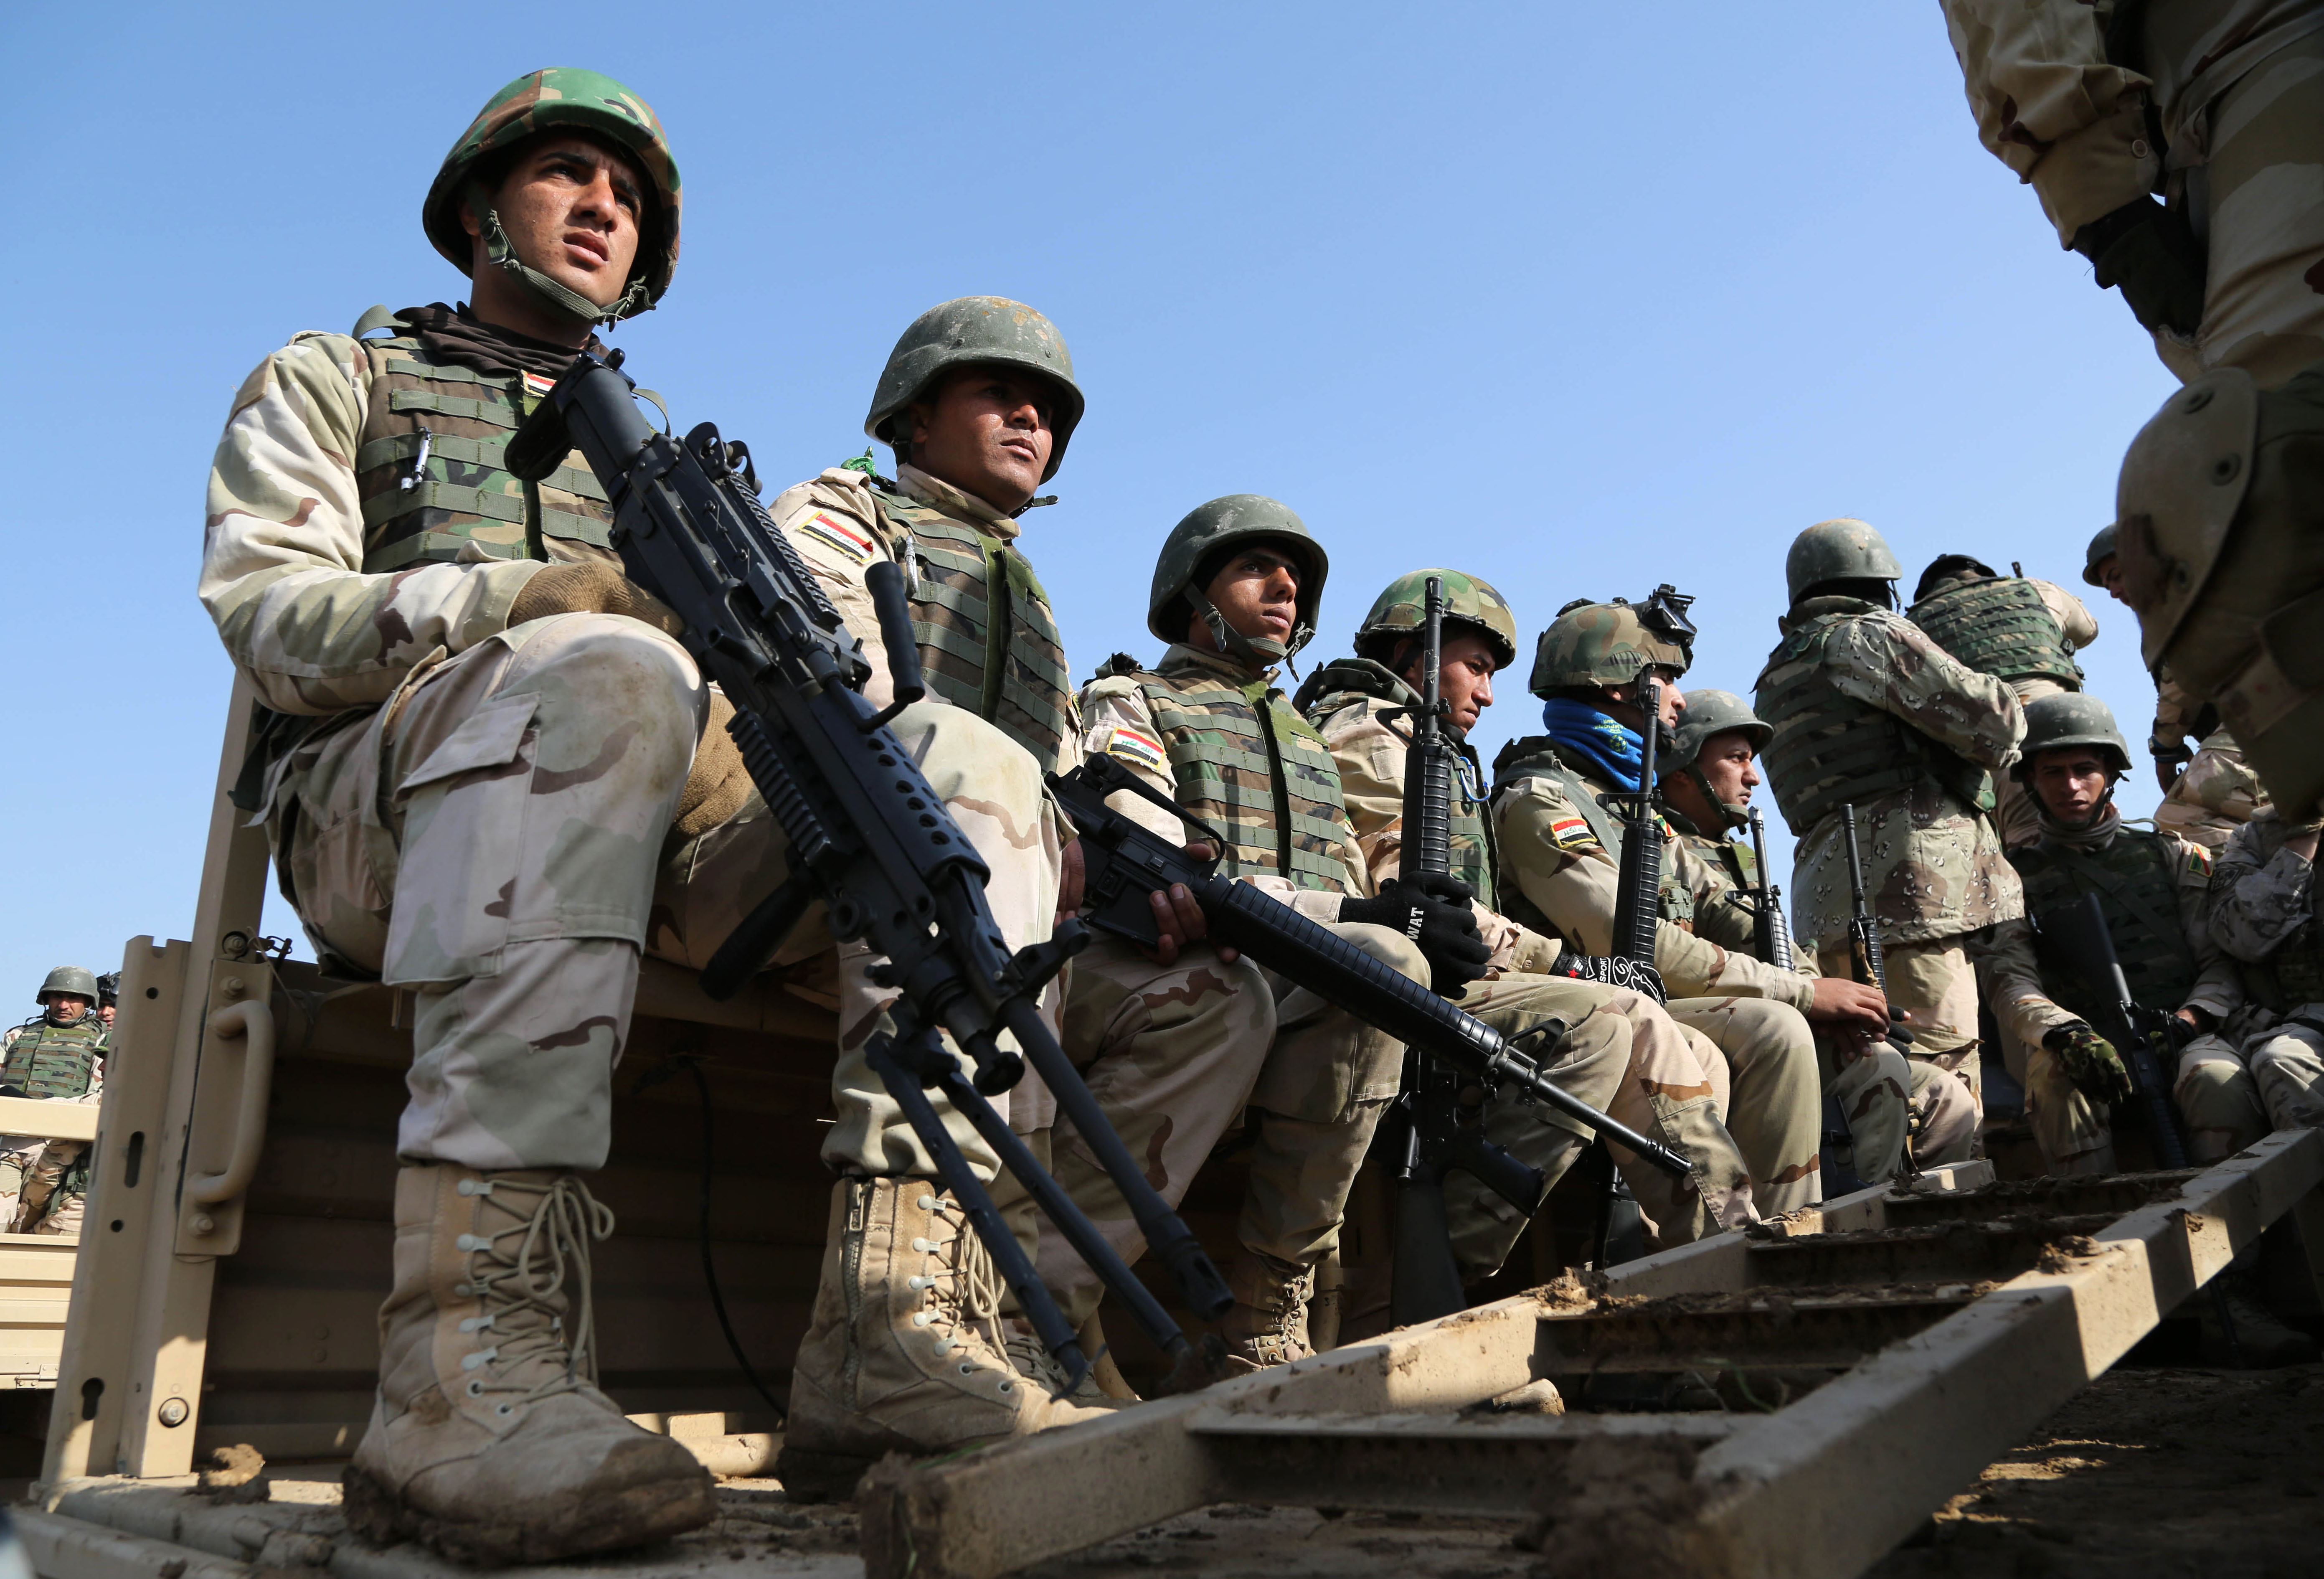 Iraq's Mosul Dam Teetering on the Brink of Collapse